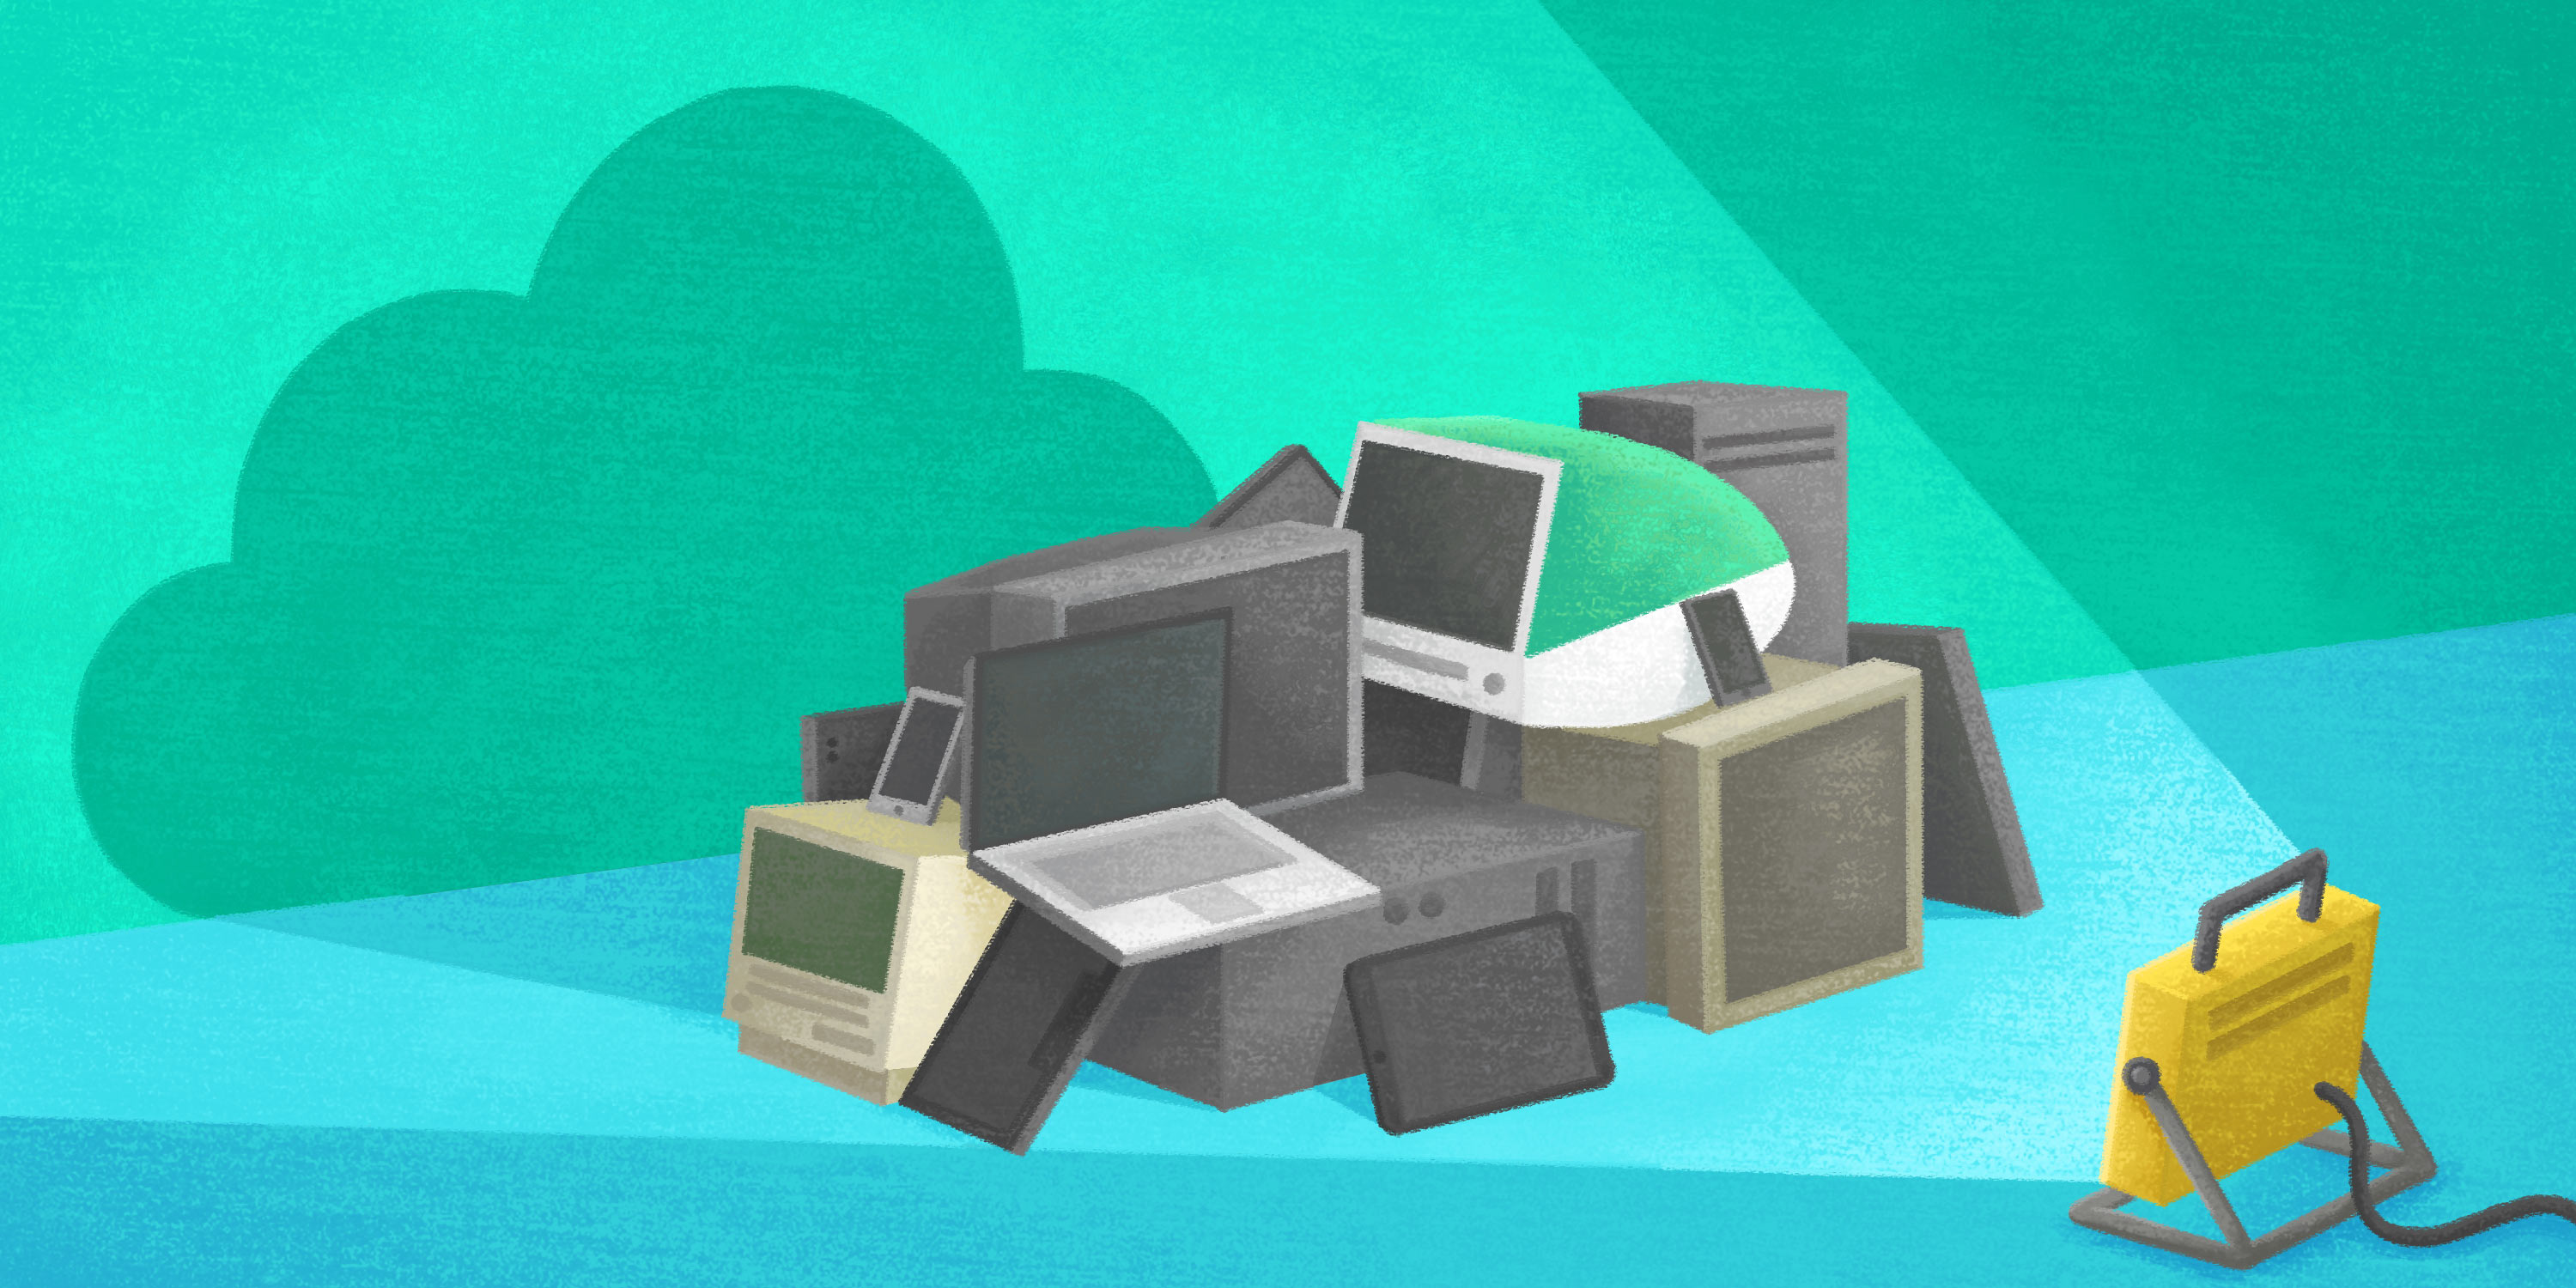 a pile of old computers is overshadowed by cloud technology